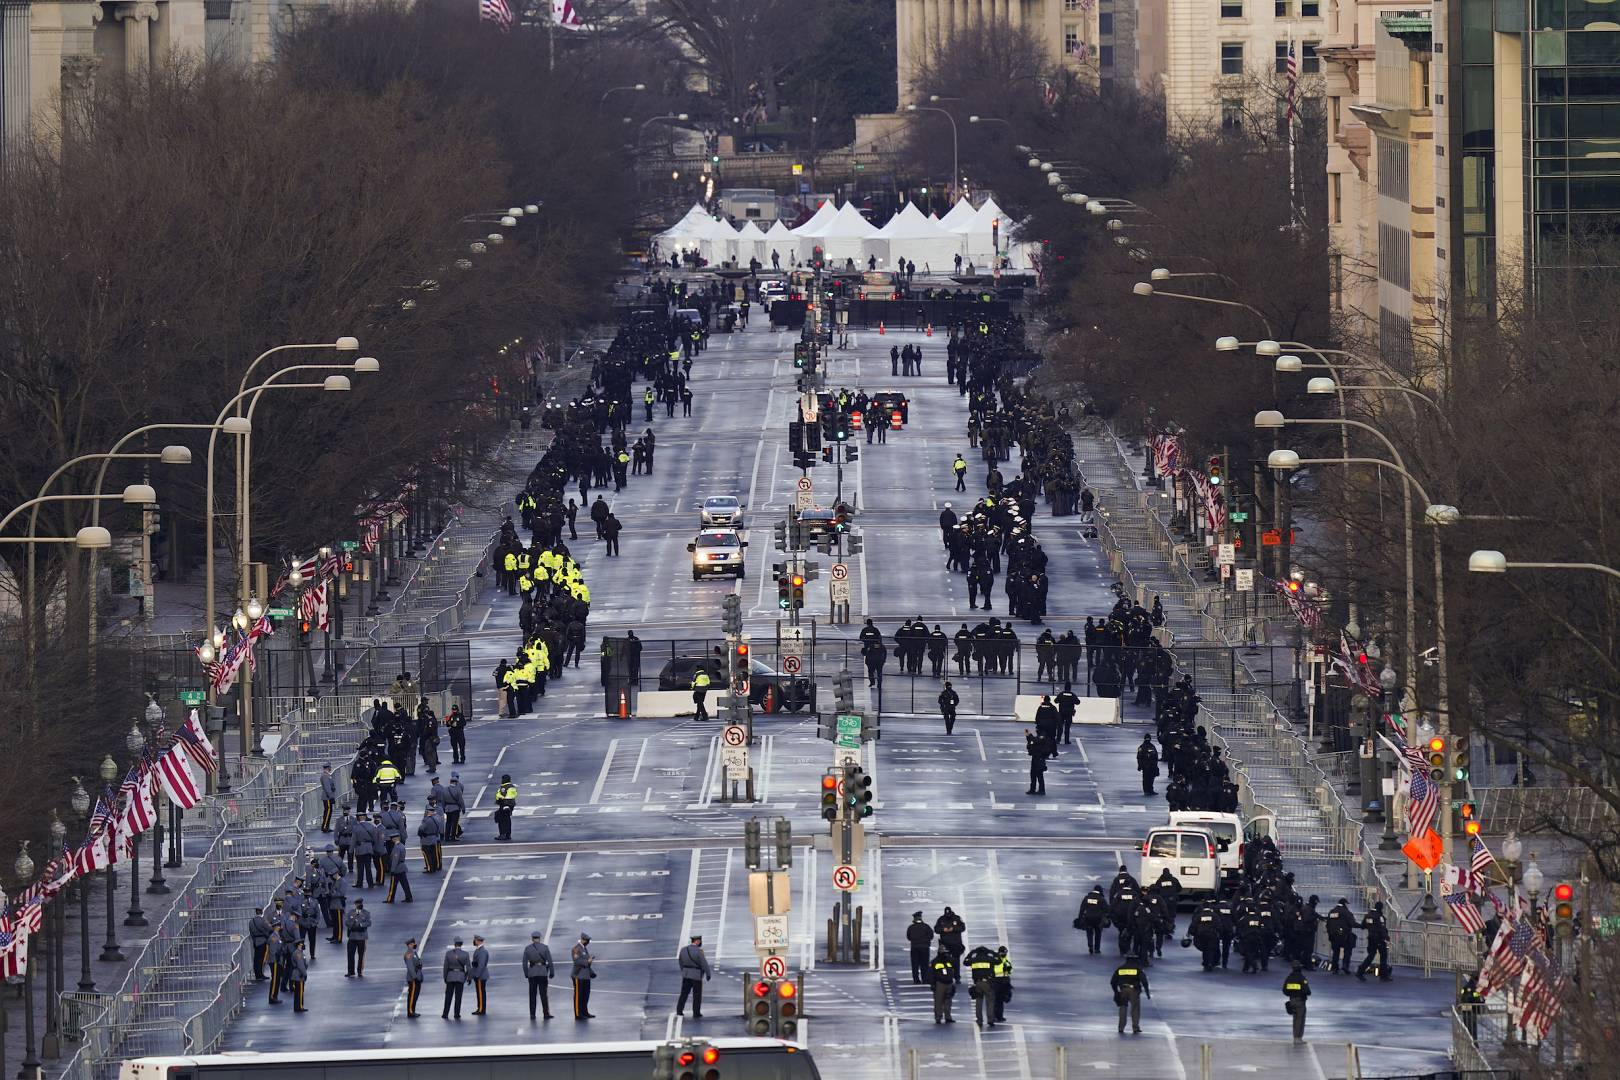 Security is set up along Pennsylvania Avenue before the 59th Presidential Inauguration at the U.S. Capitol in Washington. January 20, 2021